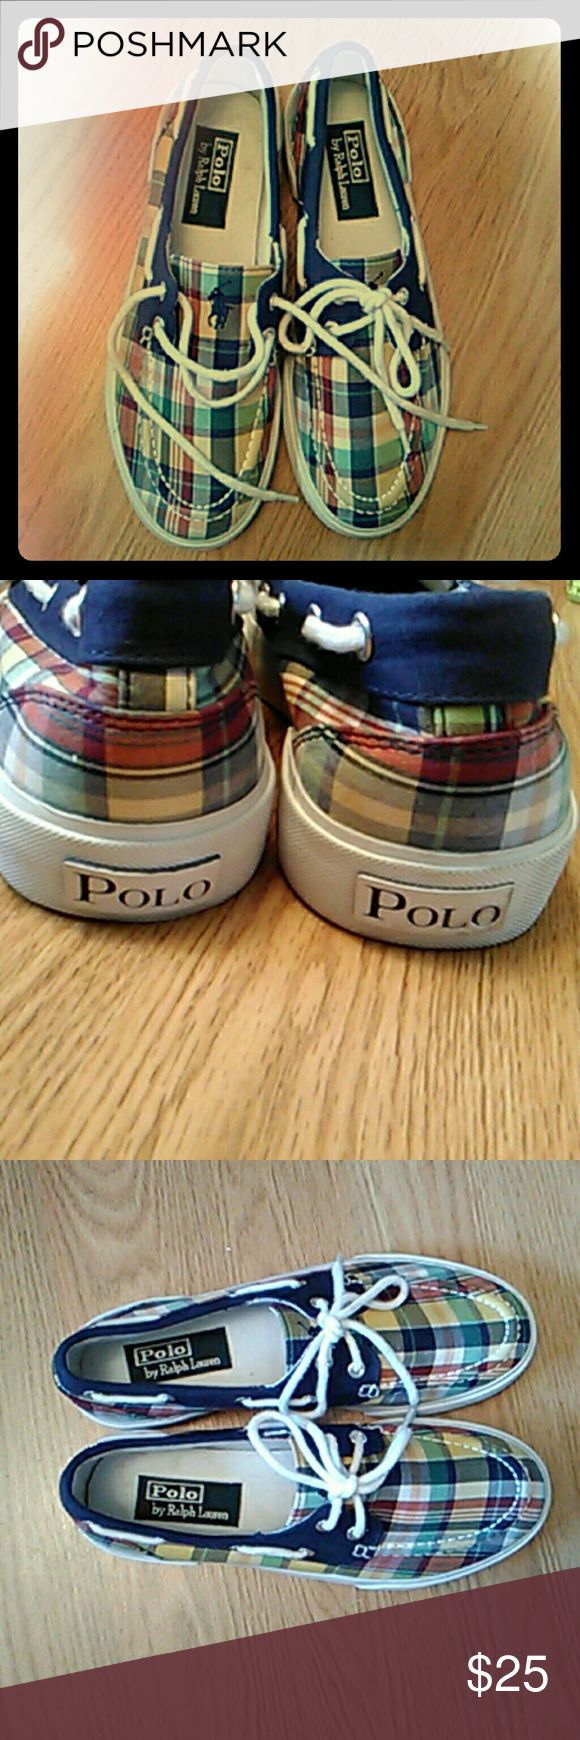 Unisex boat shoes EUC! Son only wore it once for me. If my size, I'd wear them for sure!! Polo by Ralph Lauren Shoes Boat Shoes